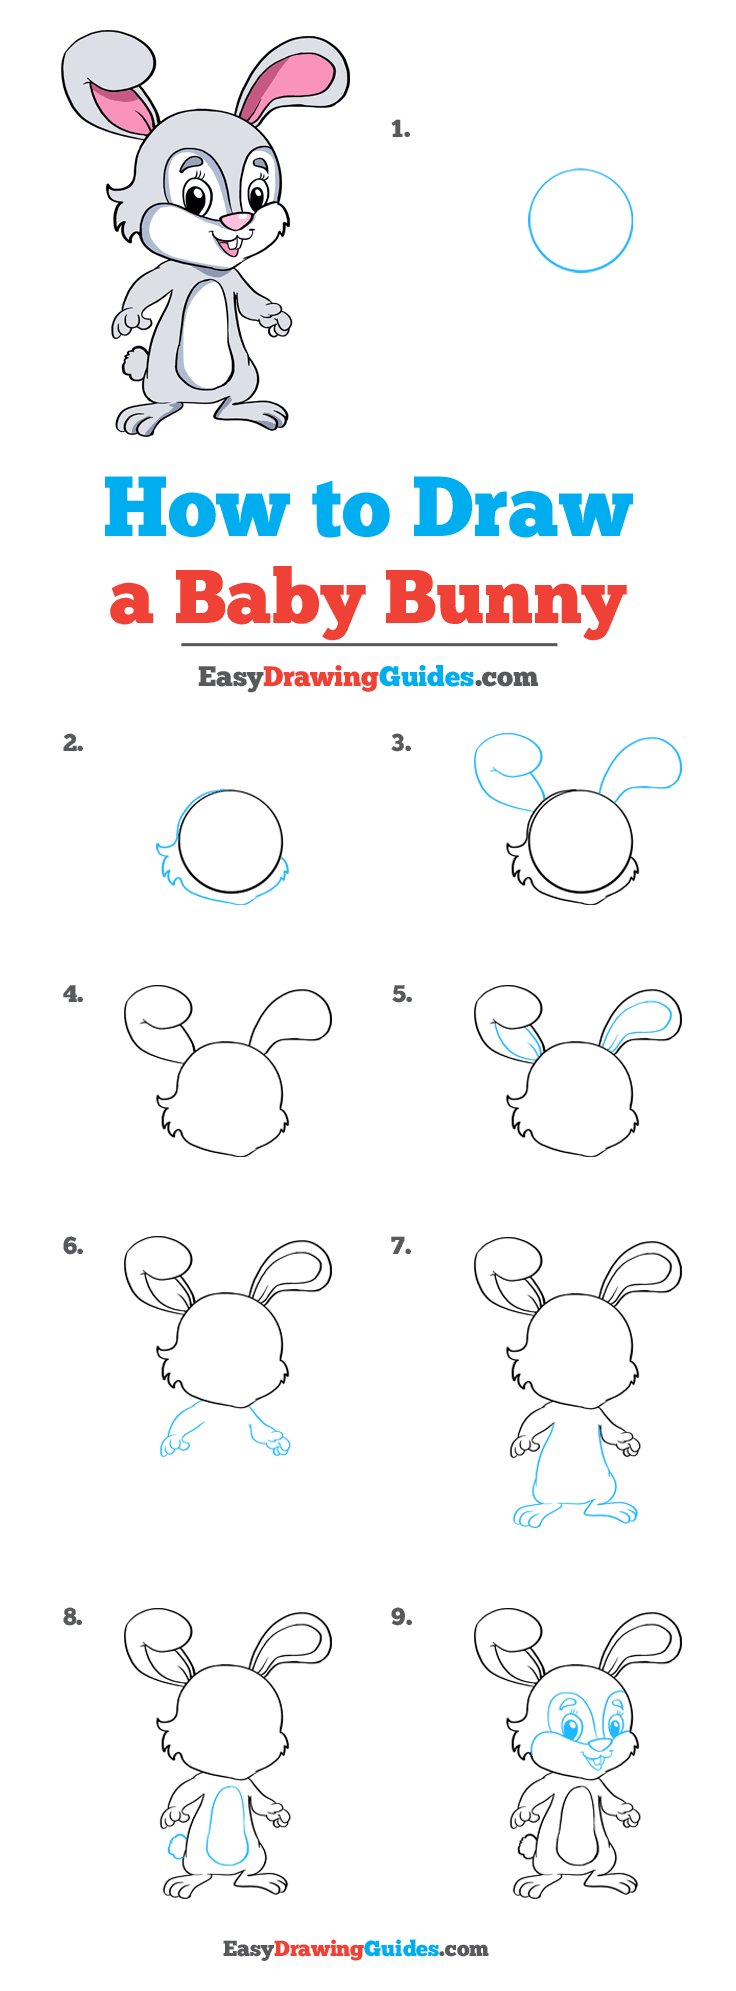 How to Draw Baby Bunny